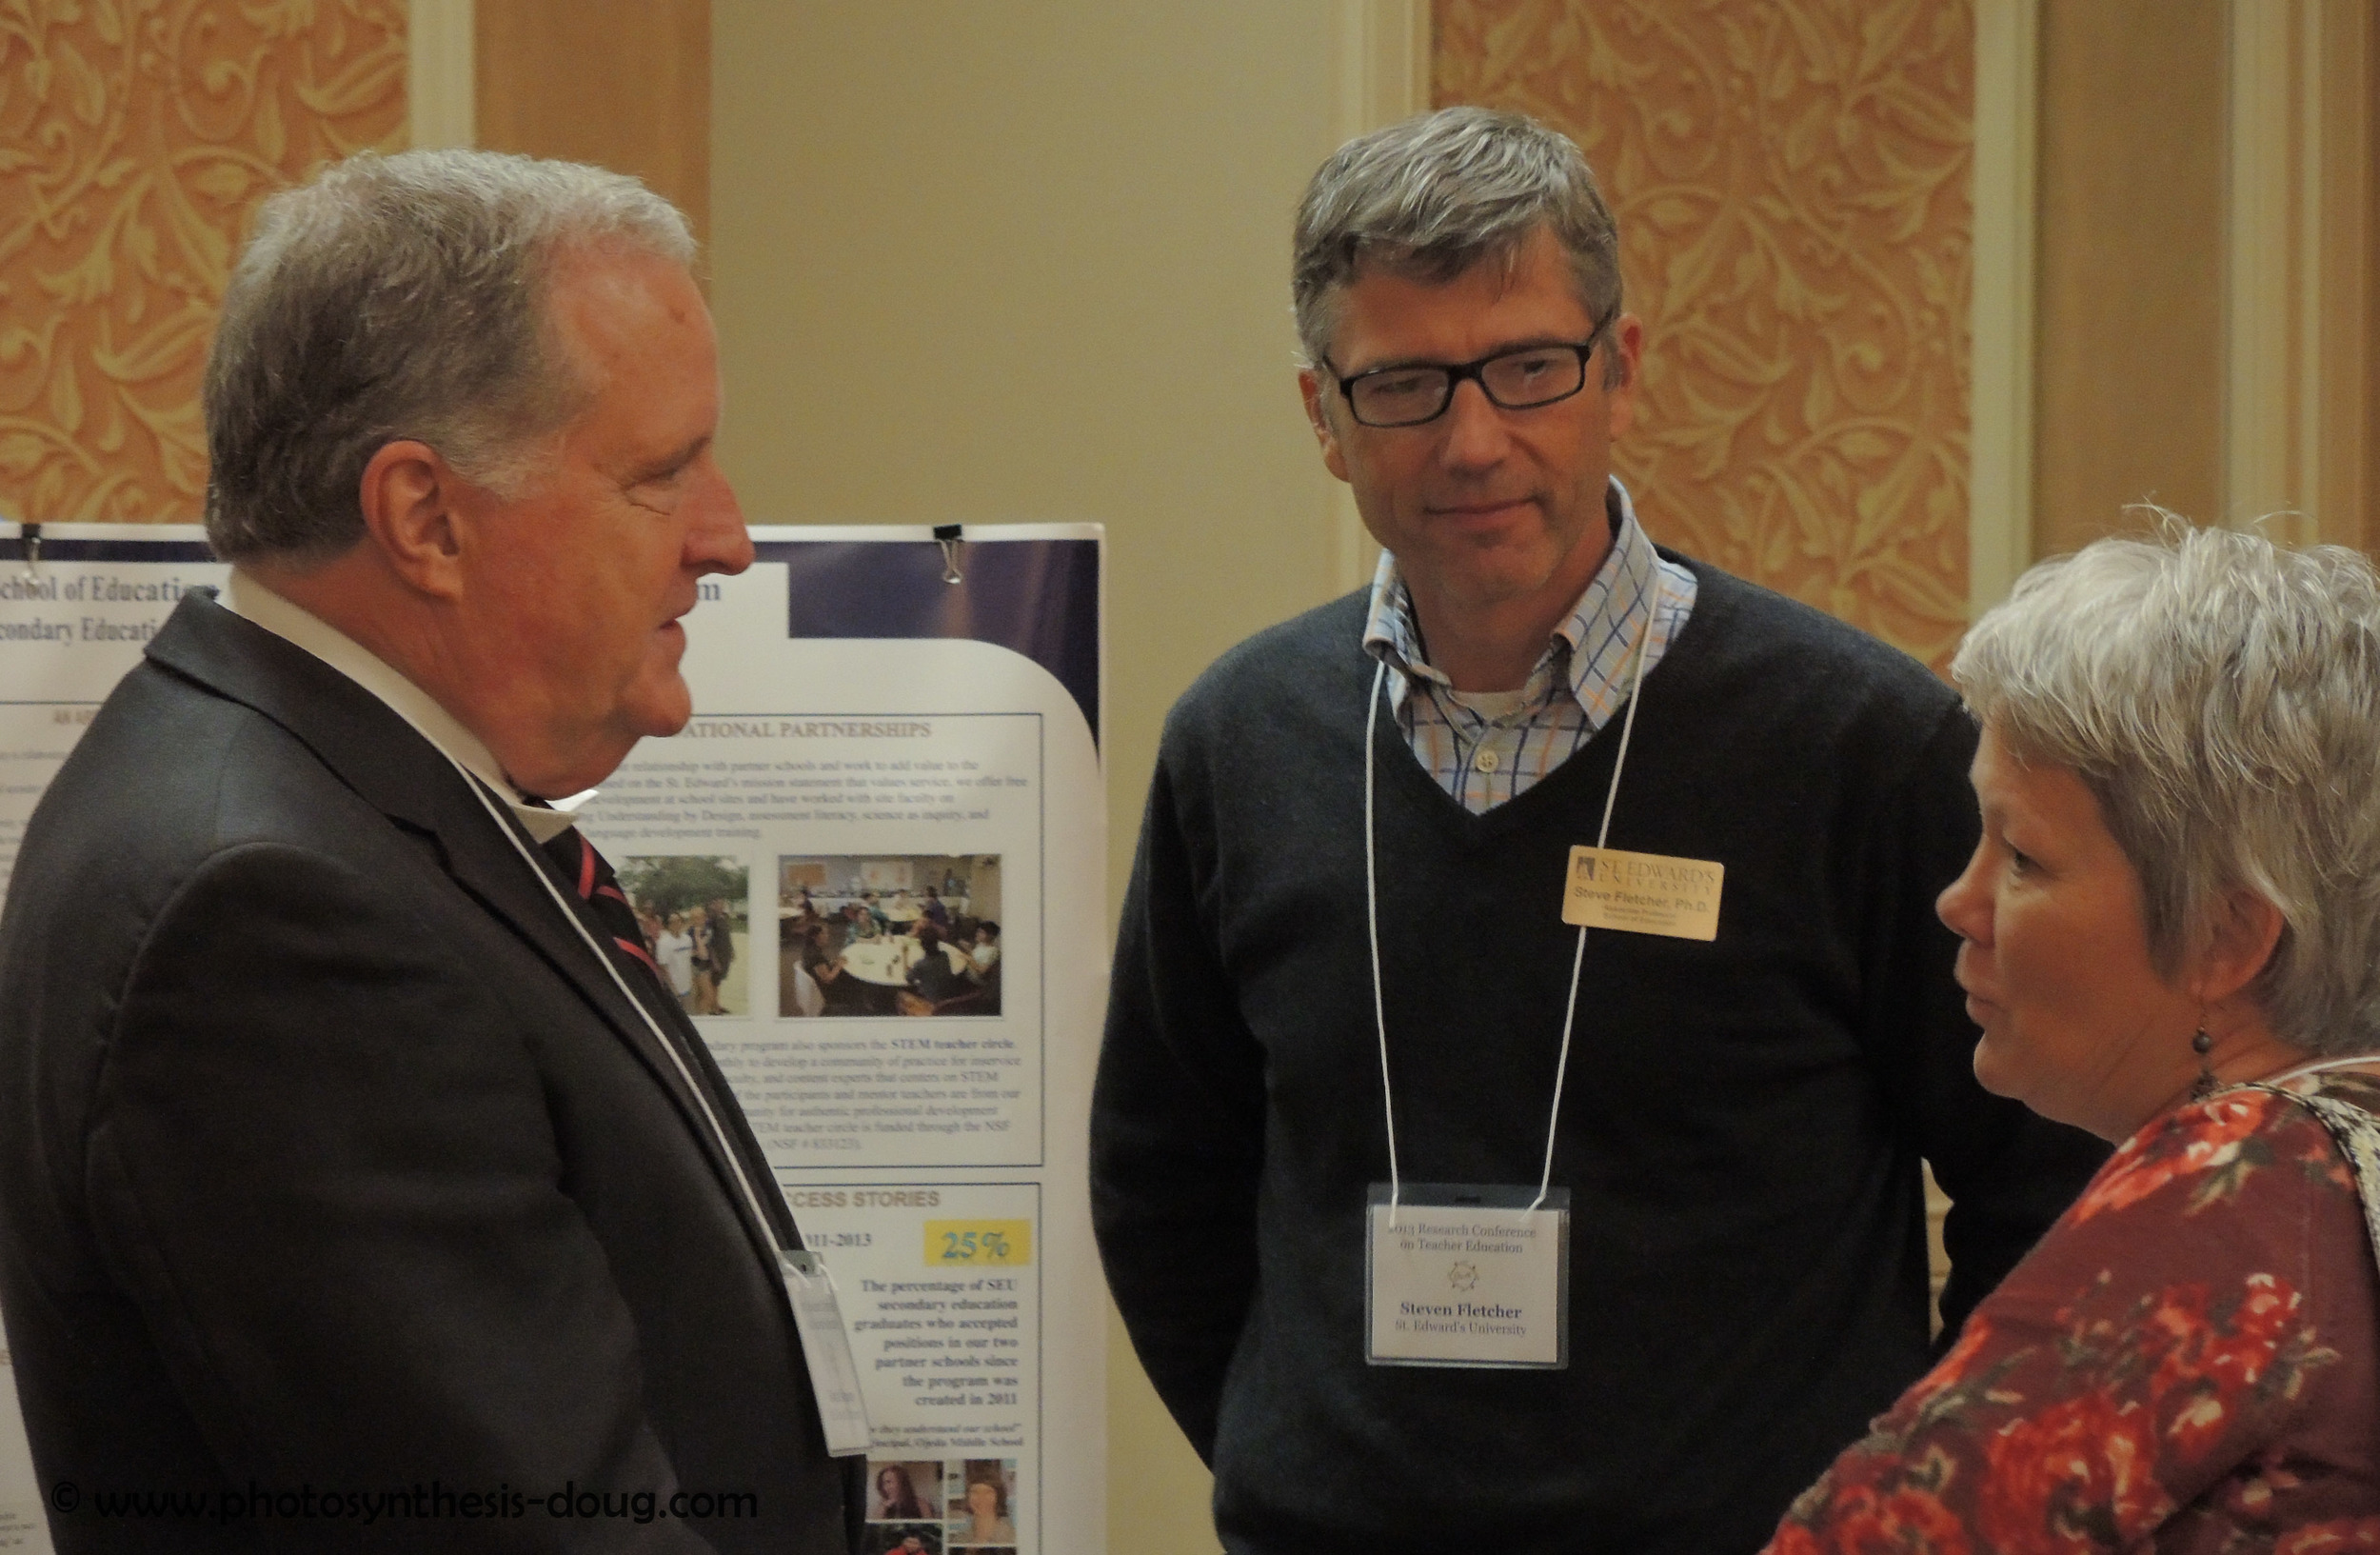 poster sessions-2875.jpg